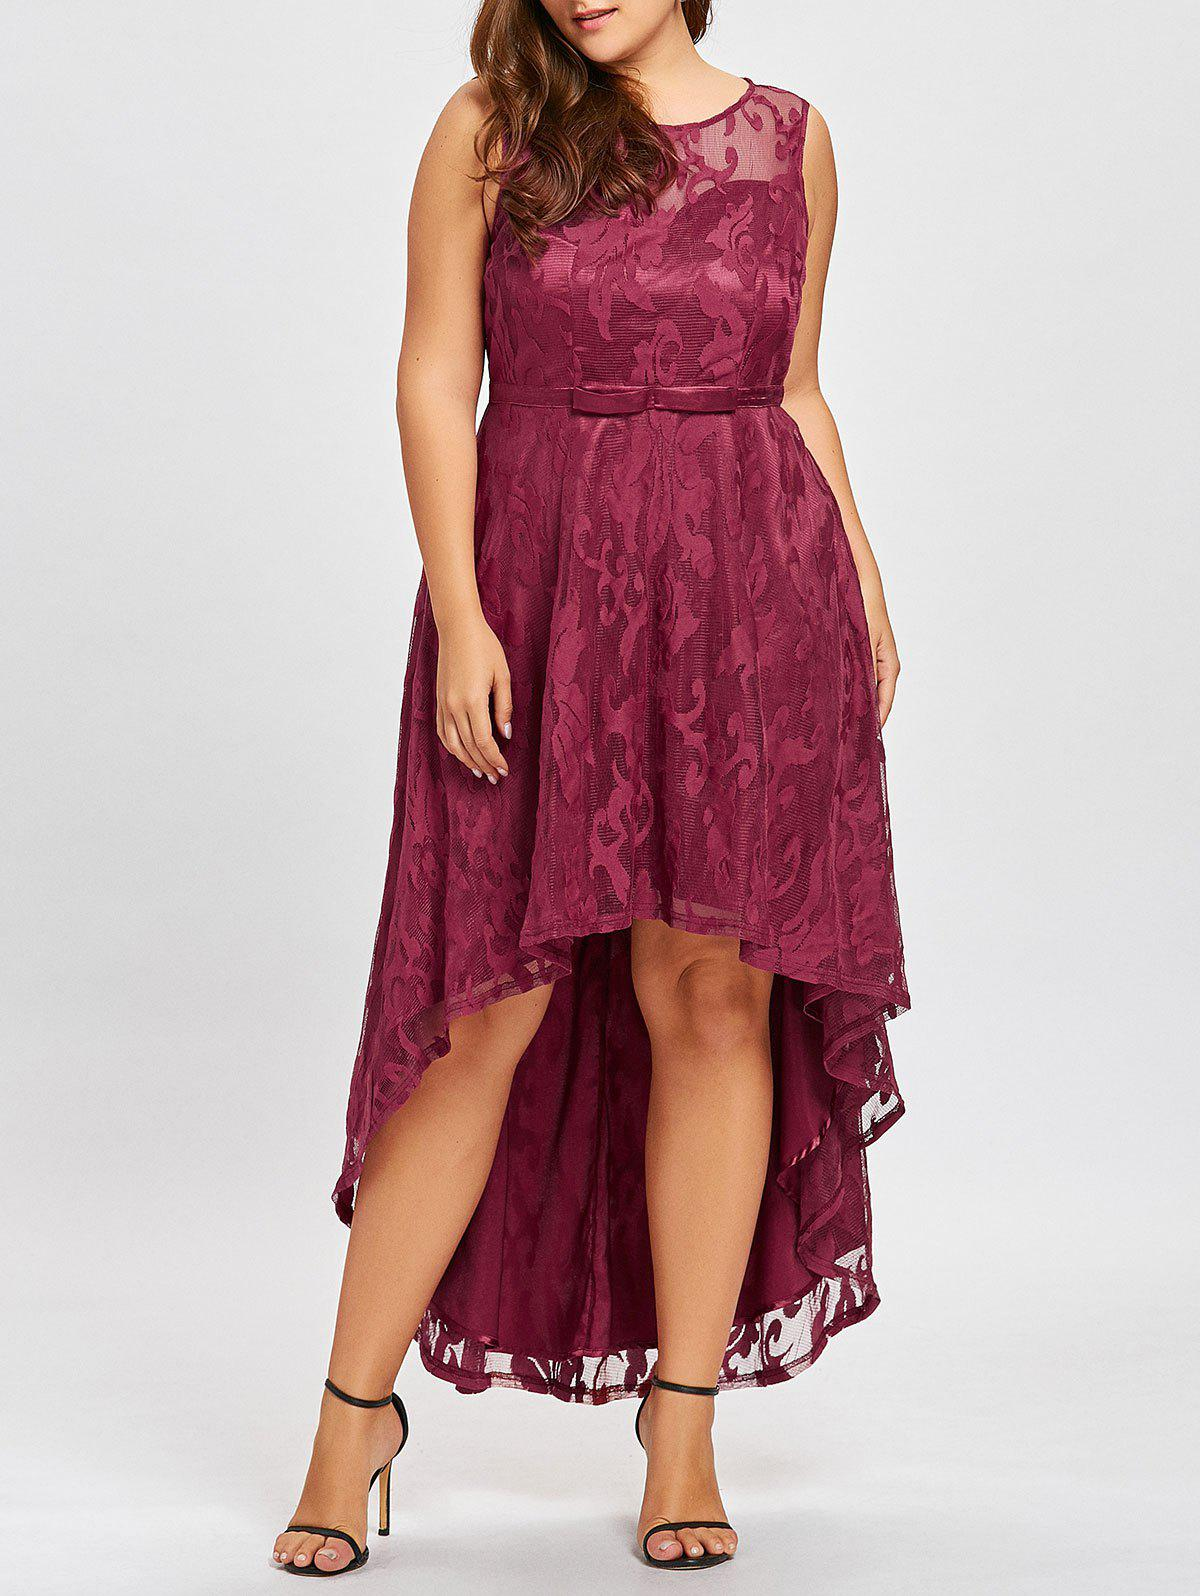 Plus Size Lace High Low Evening Dress - WINE RED 3XL